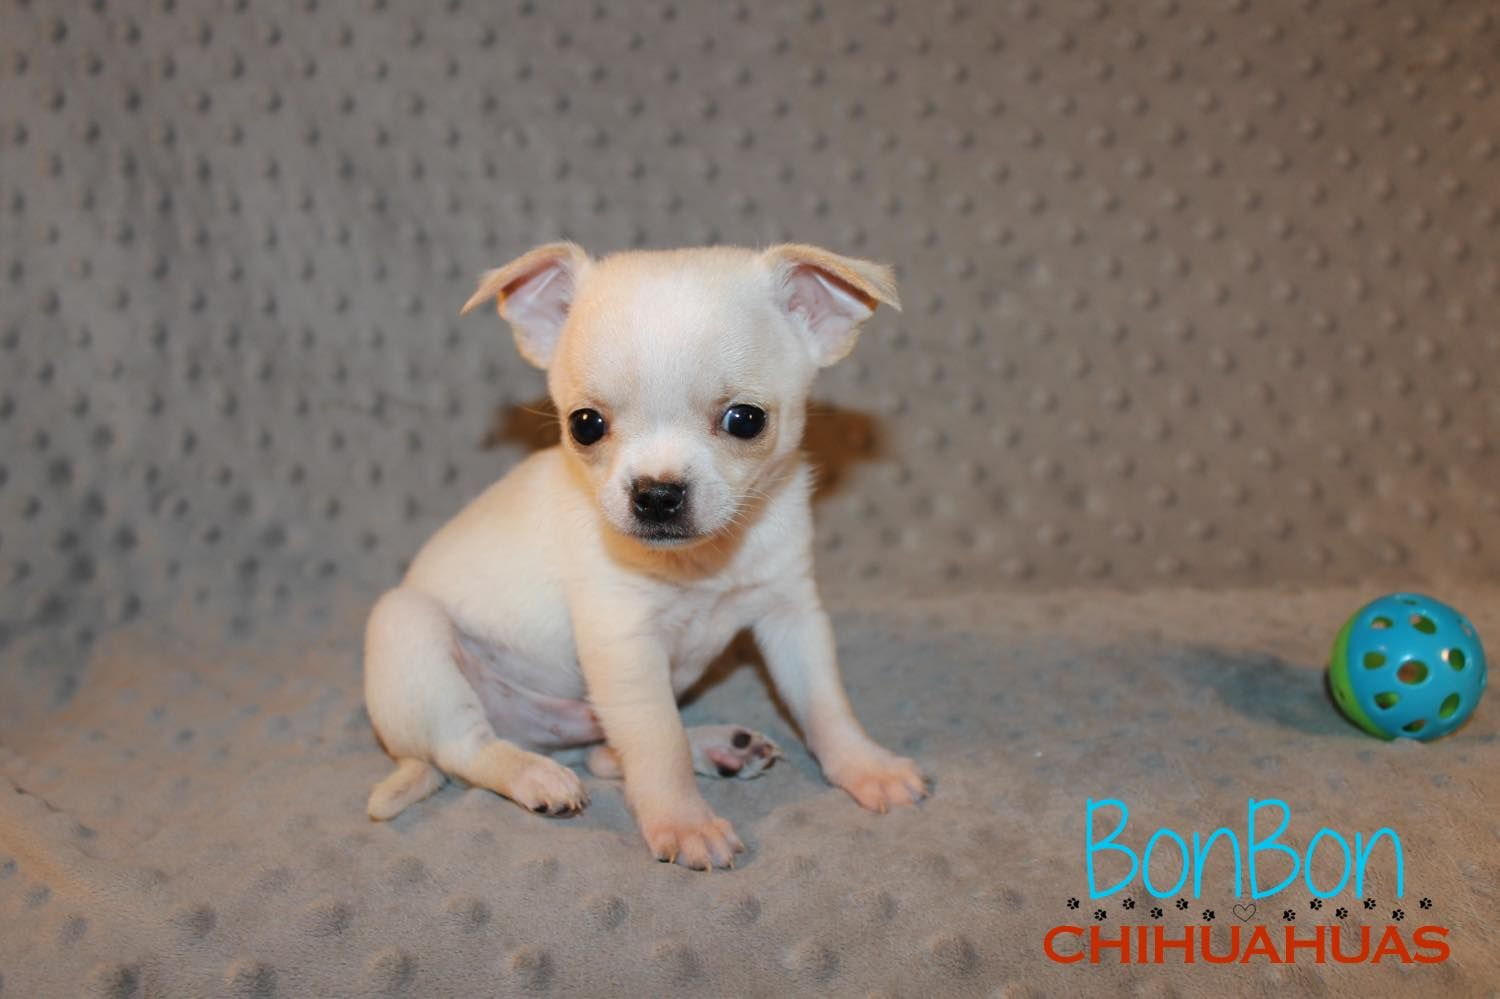 Chihuahua Puppies For Sale Chihuahua Puppies Chihuahua Baby